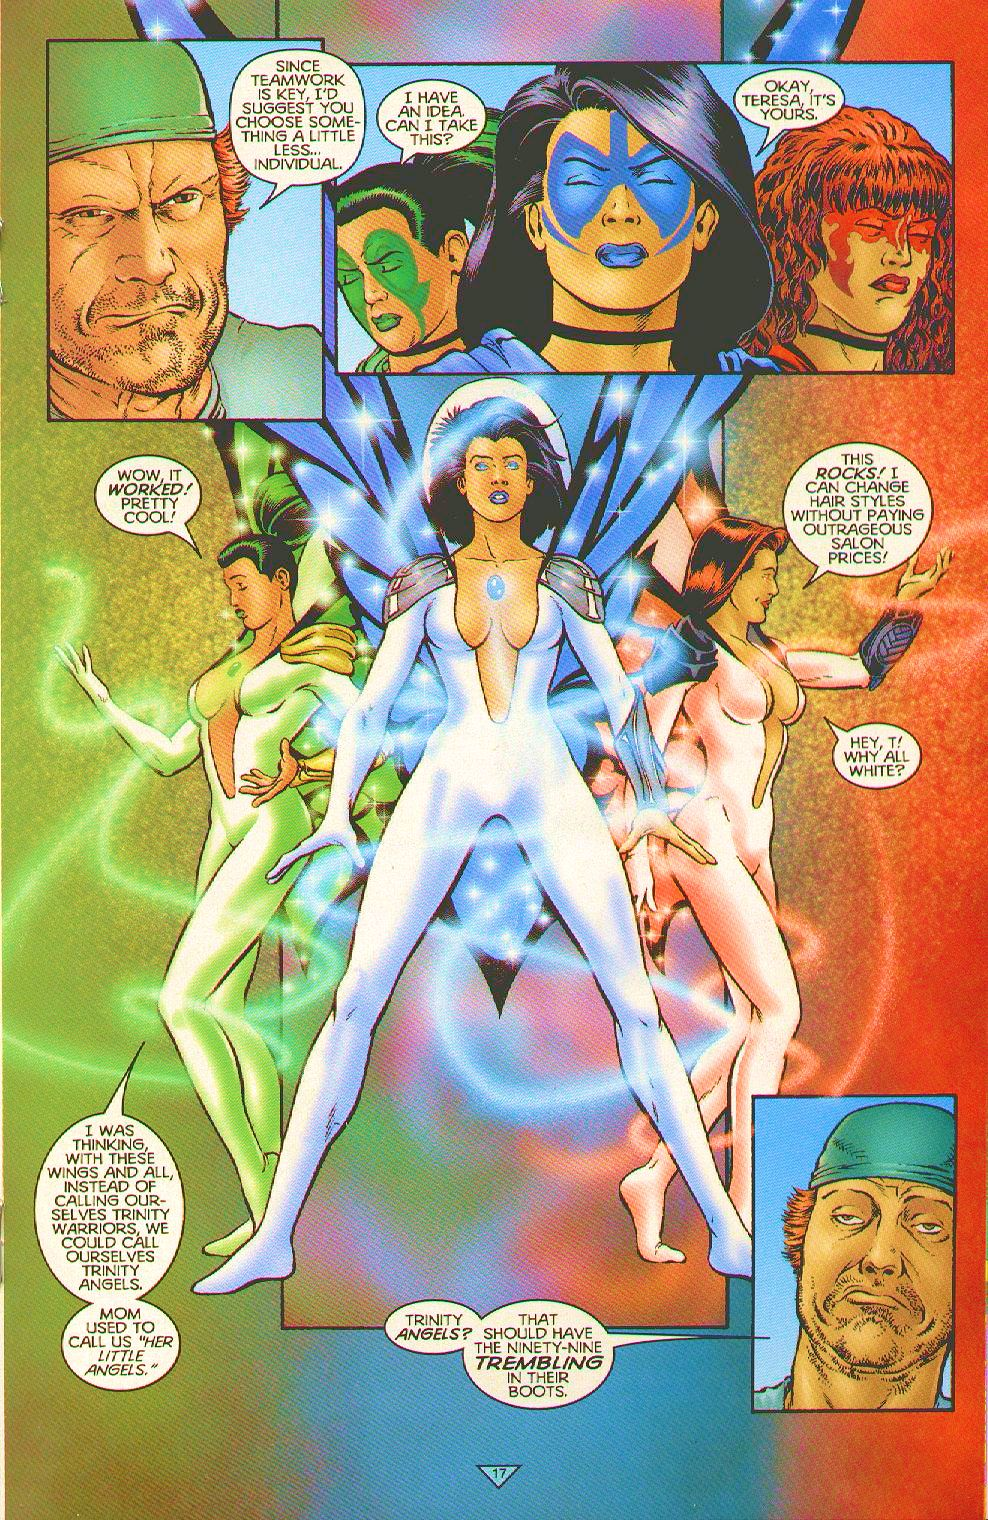 Read online Trinity Angels comic -  Issue #5 - 12